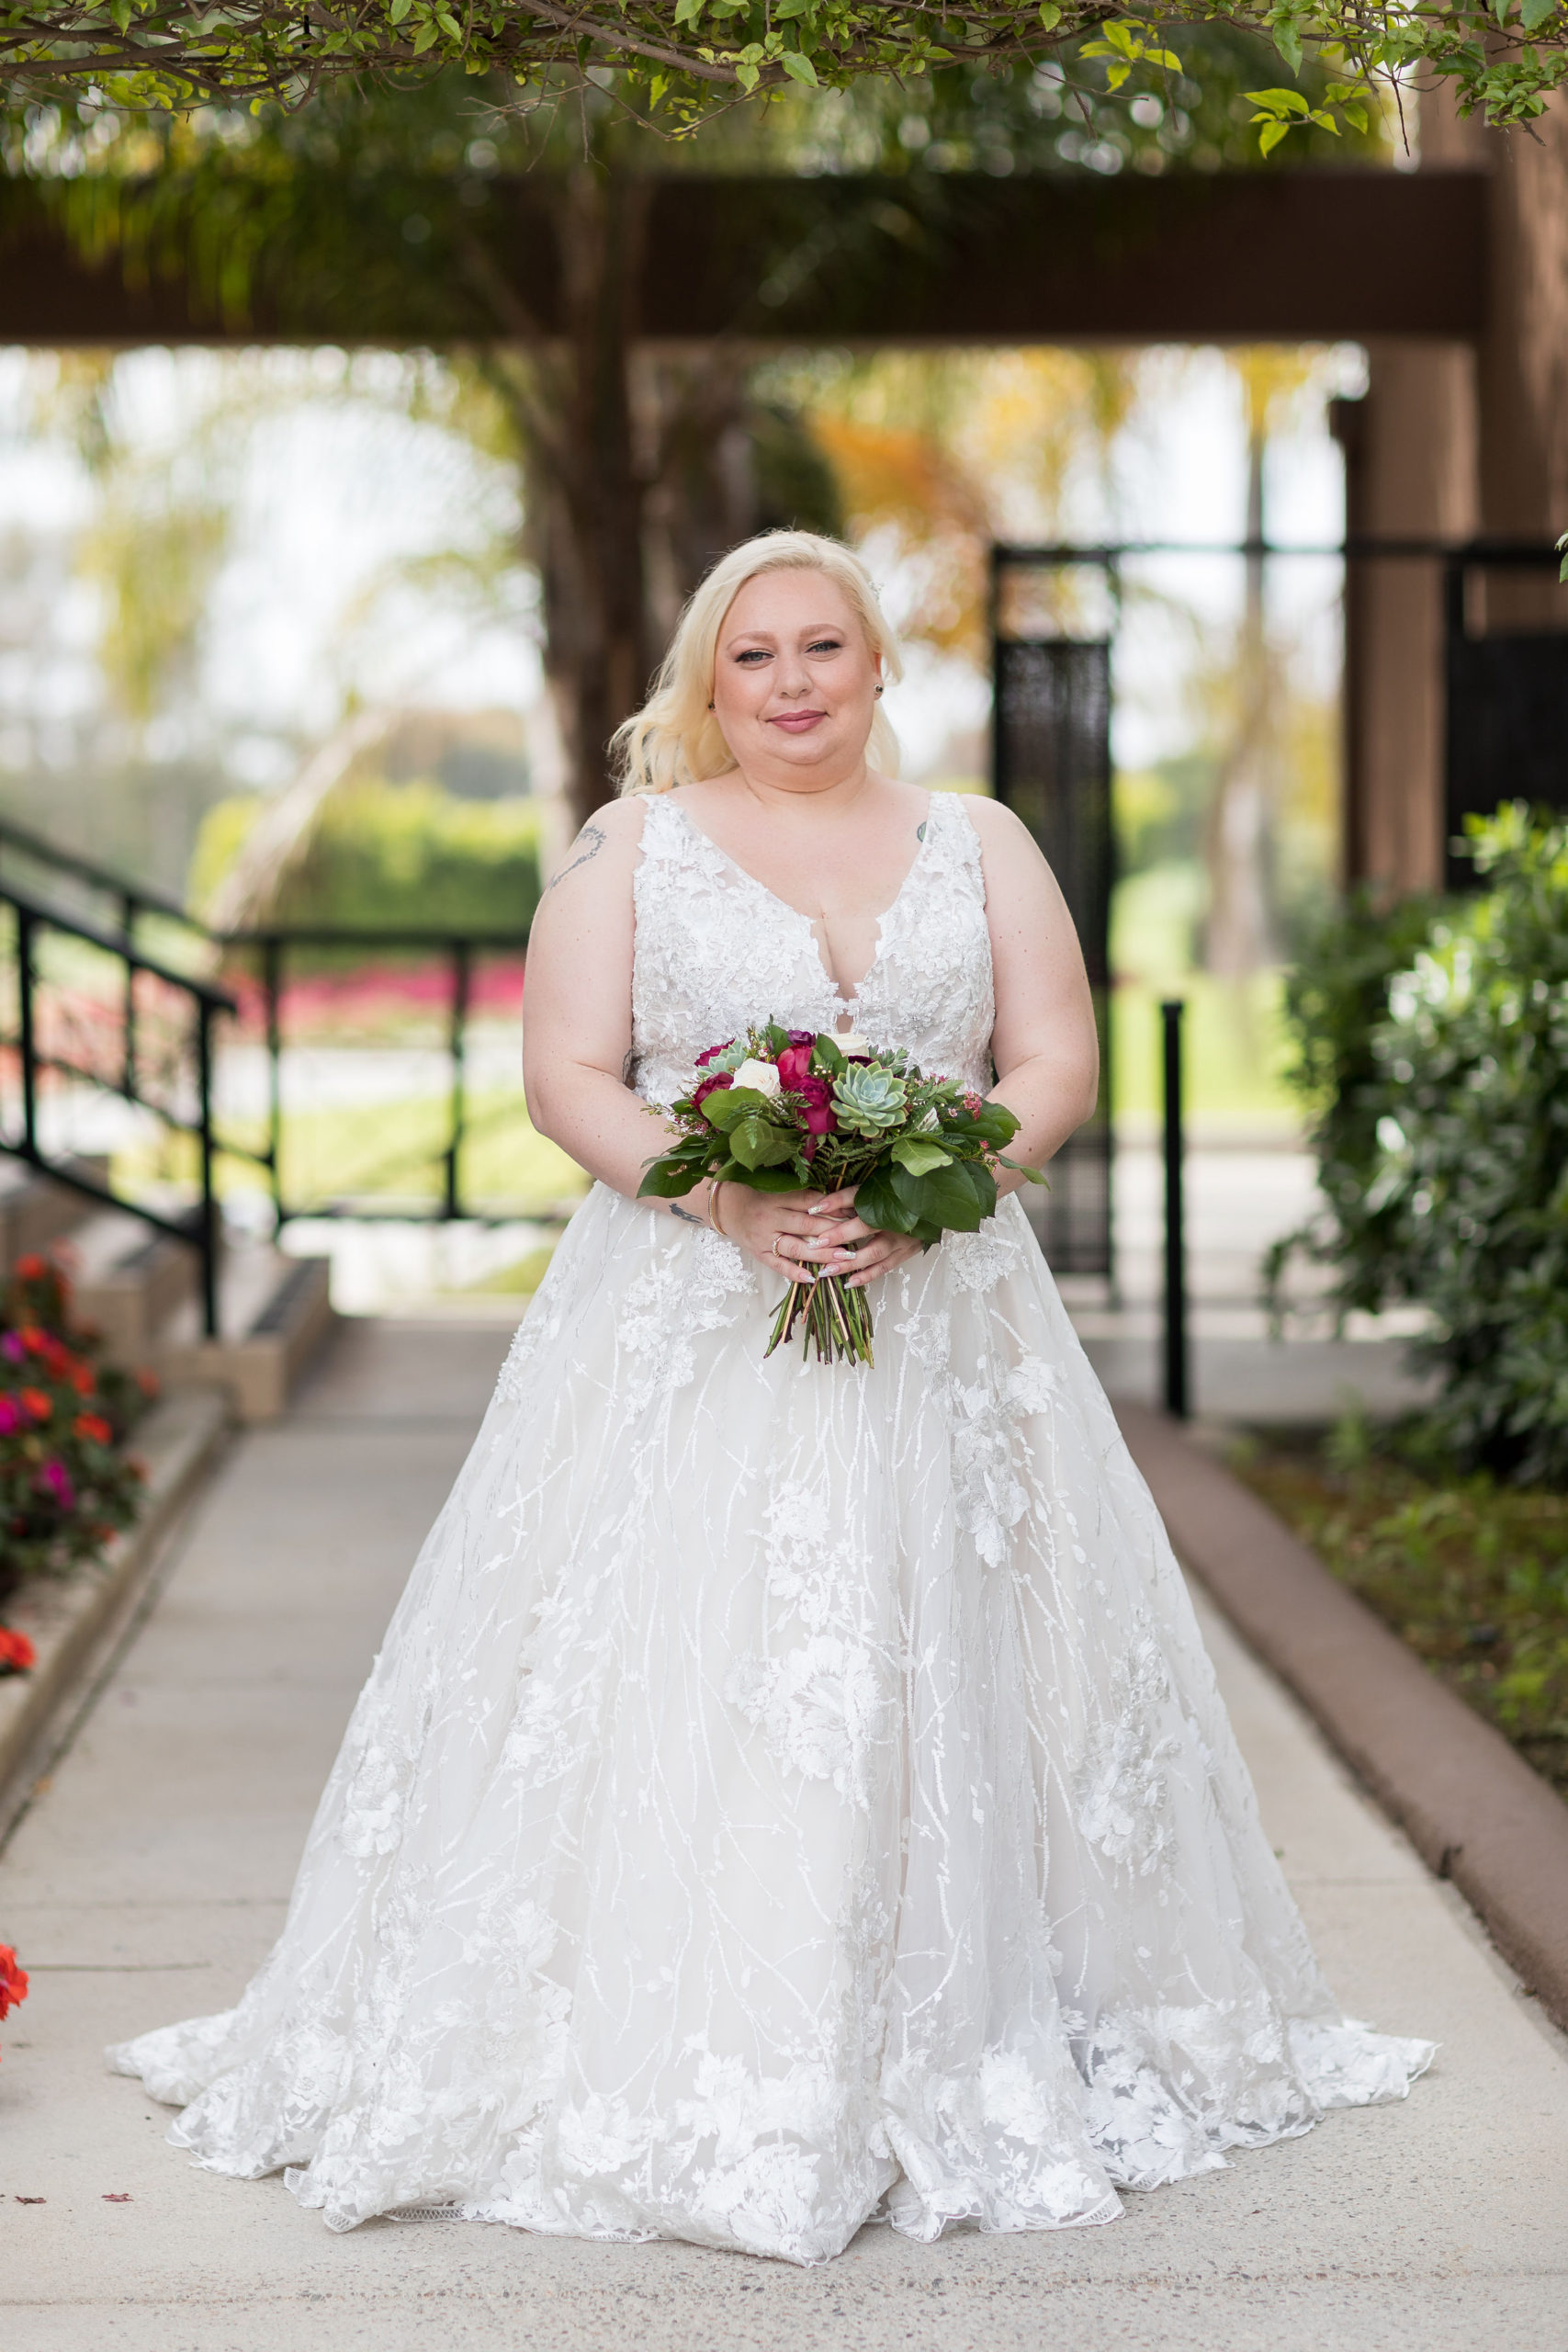 Shannon's Ornate Wedding Gown